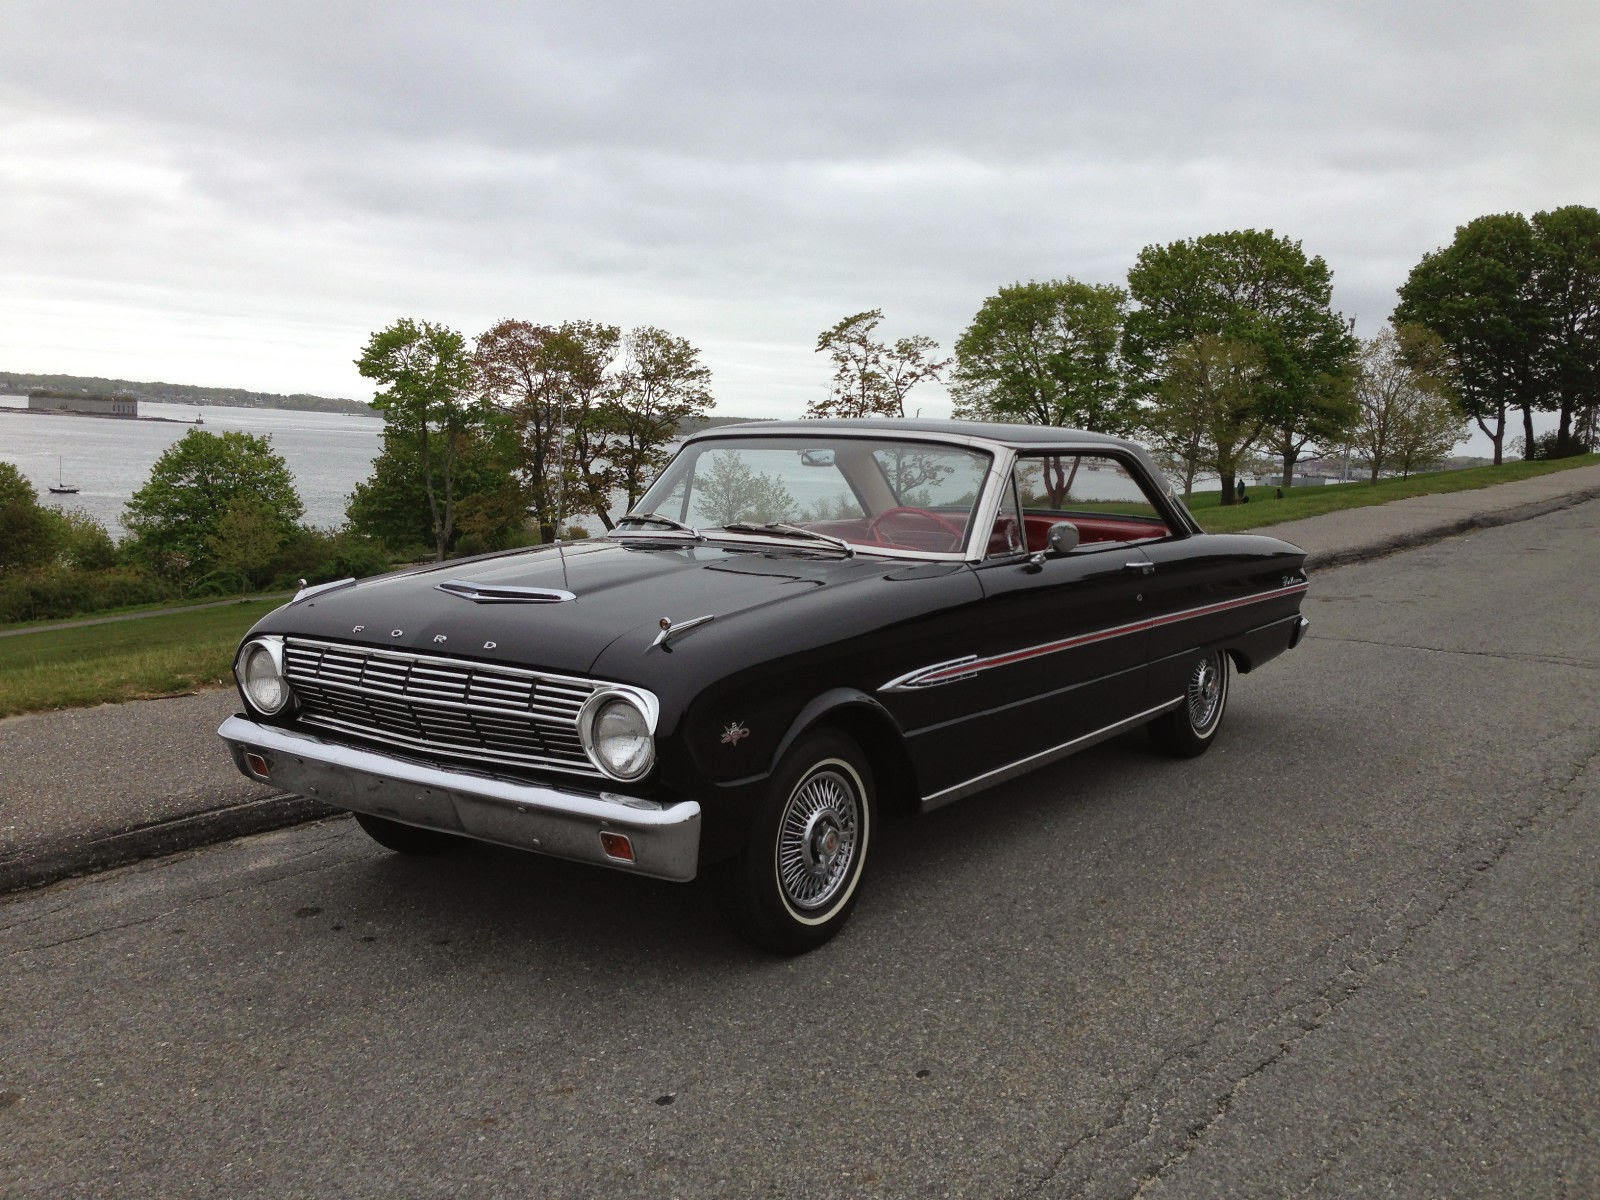 All American Classic Cars 1963 Ford Falcon Futura 2 Door